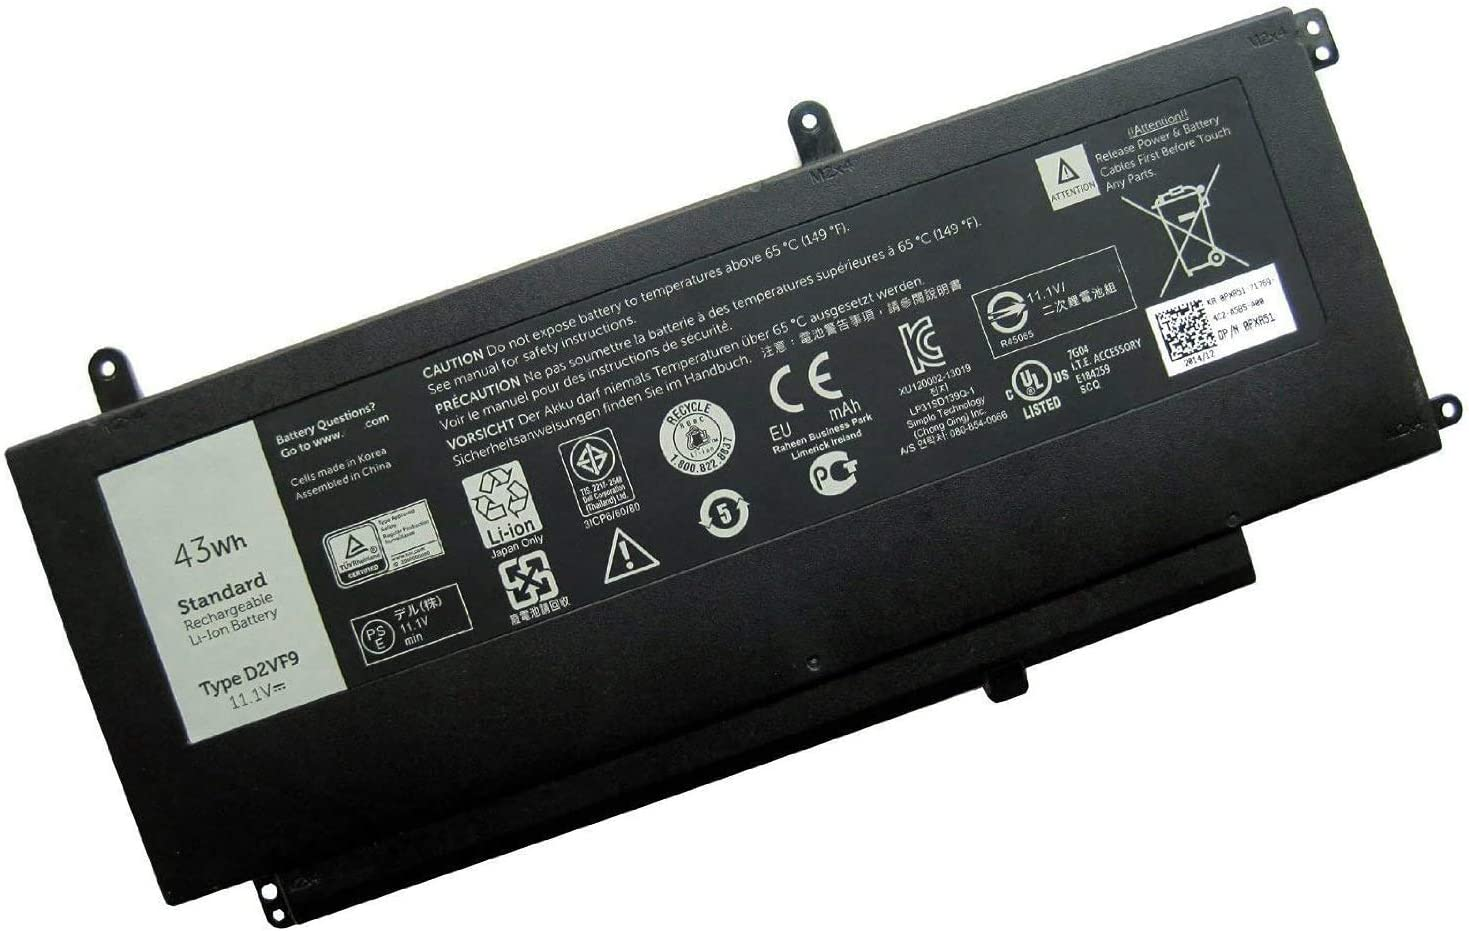 Tandirect New D2VF9 43Wh Replacement Laptop Battery Compatible with Dell Inspiron 15 7547 7548 G05H0 0PXR51 CS03XL 4P8PH (11.1V)